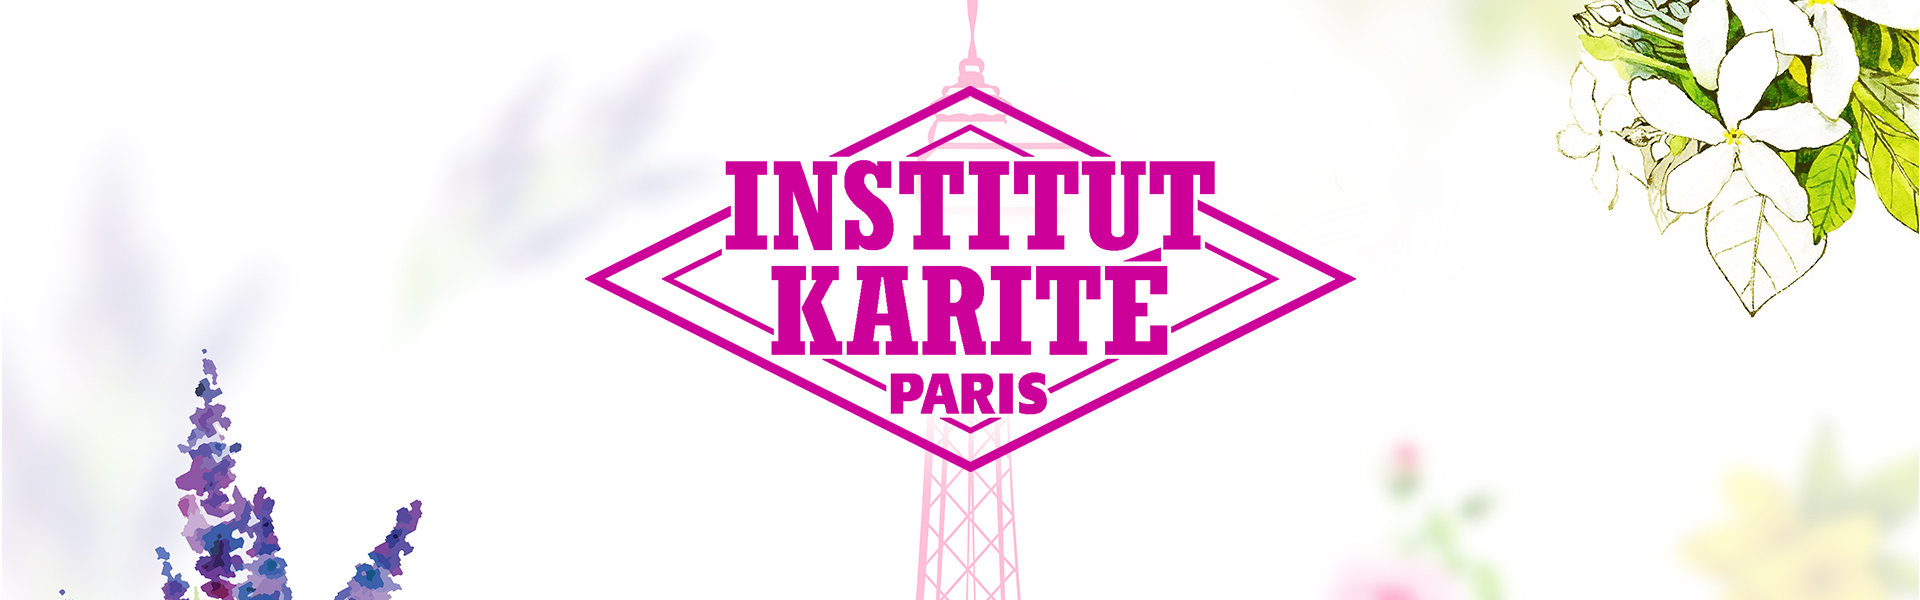 Ihupiim Institute Karite Paris Shea Lemon Verbena 200 ml                             Institut Karite Paris